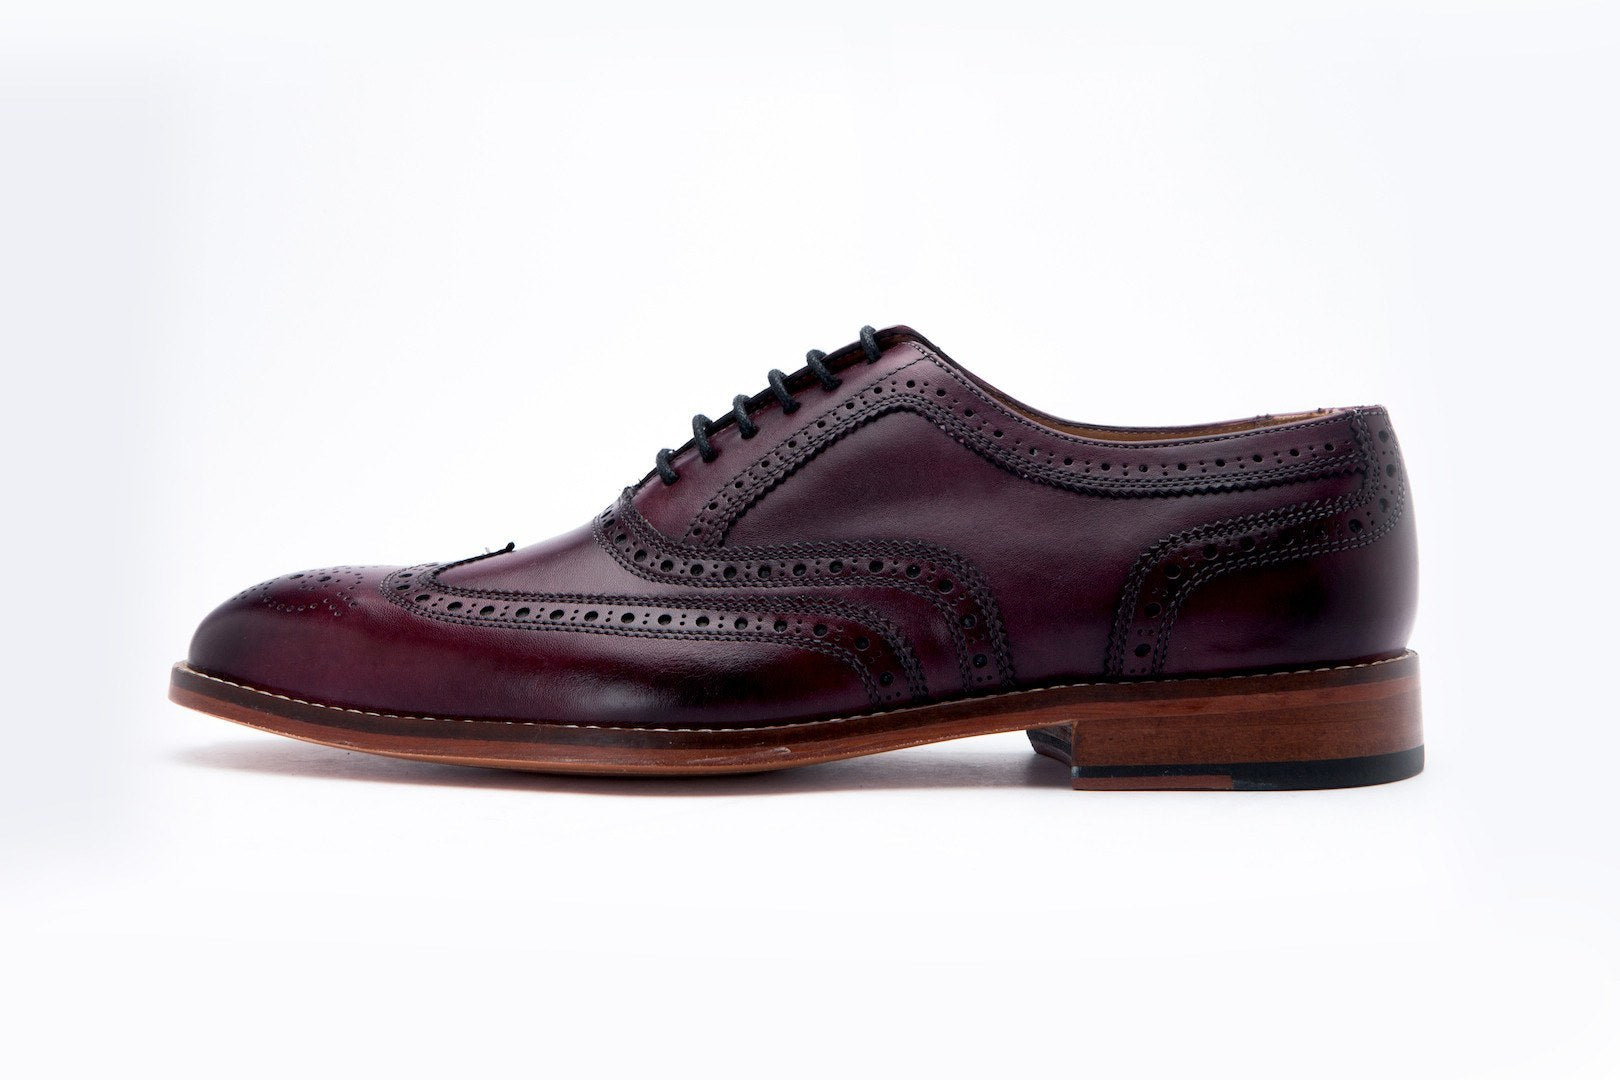 Oxfords - Wingtip Oxford Classic - Burgundy